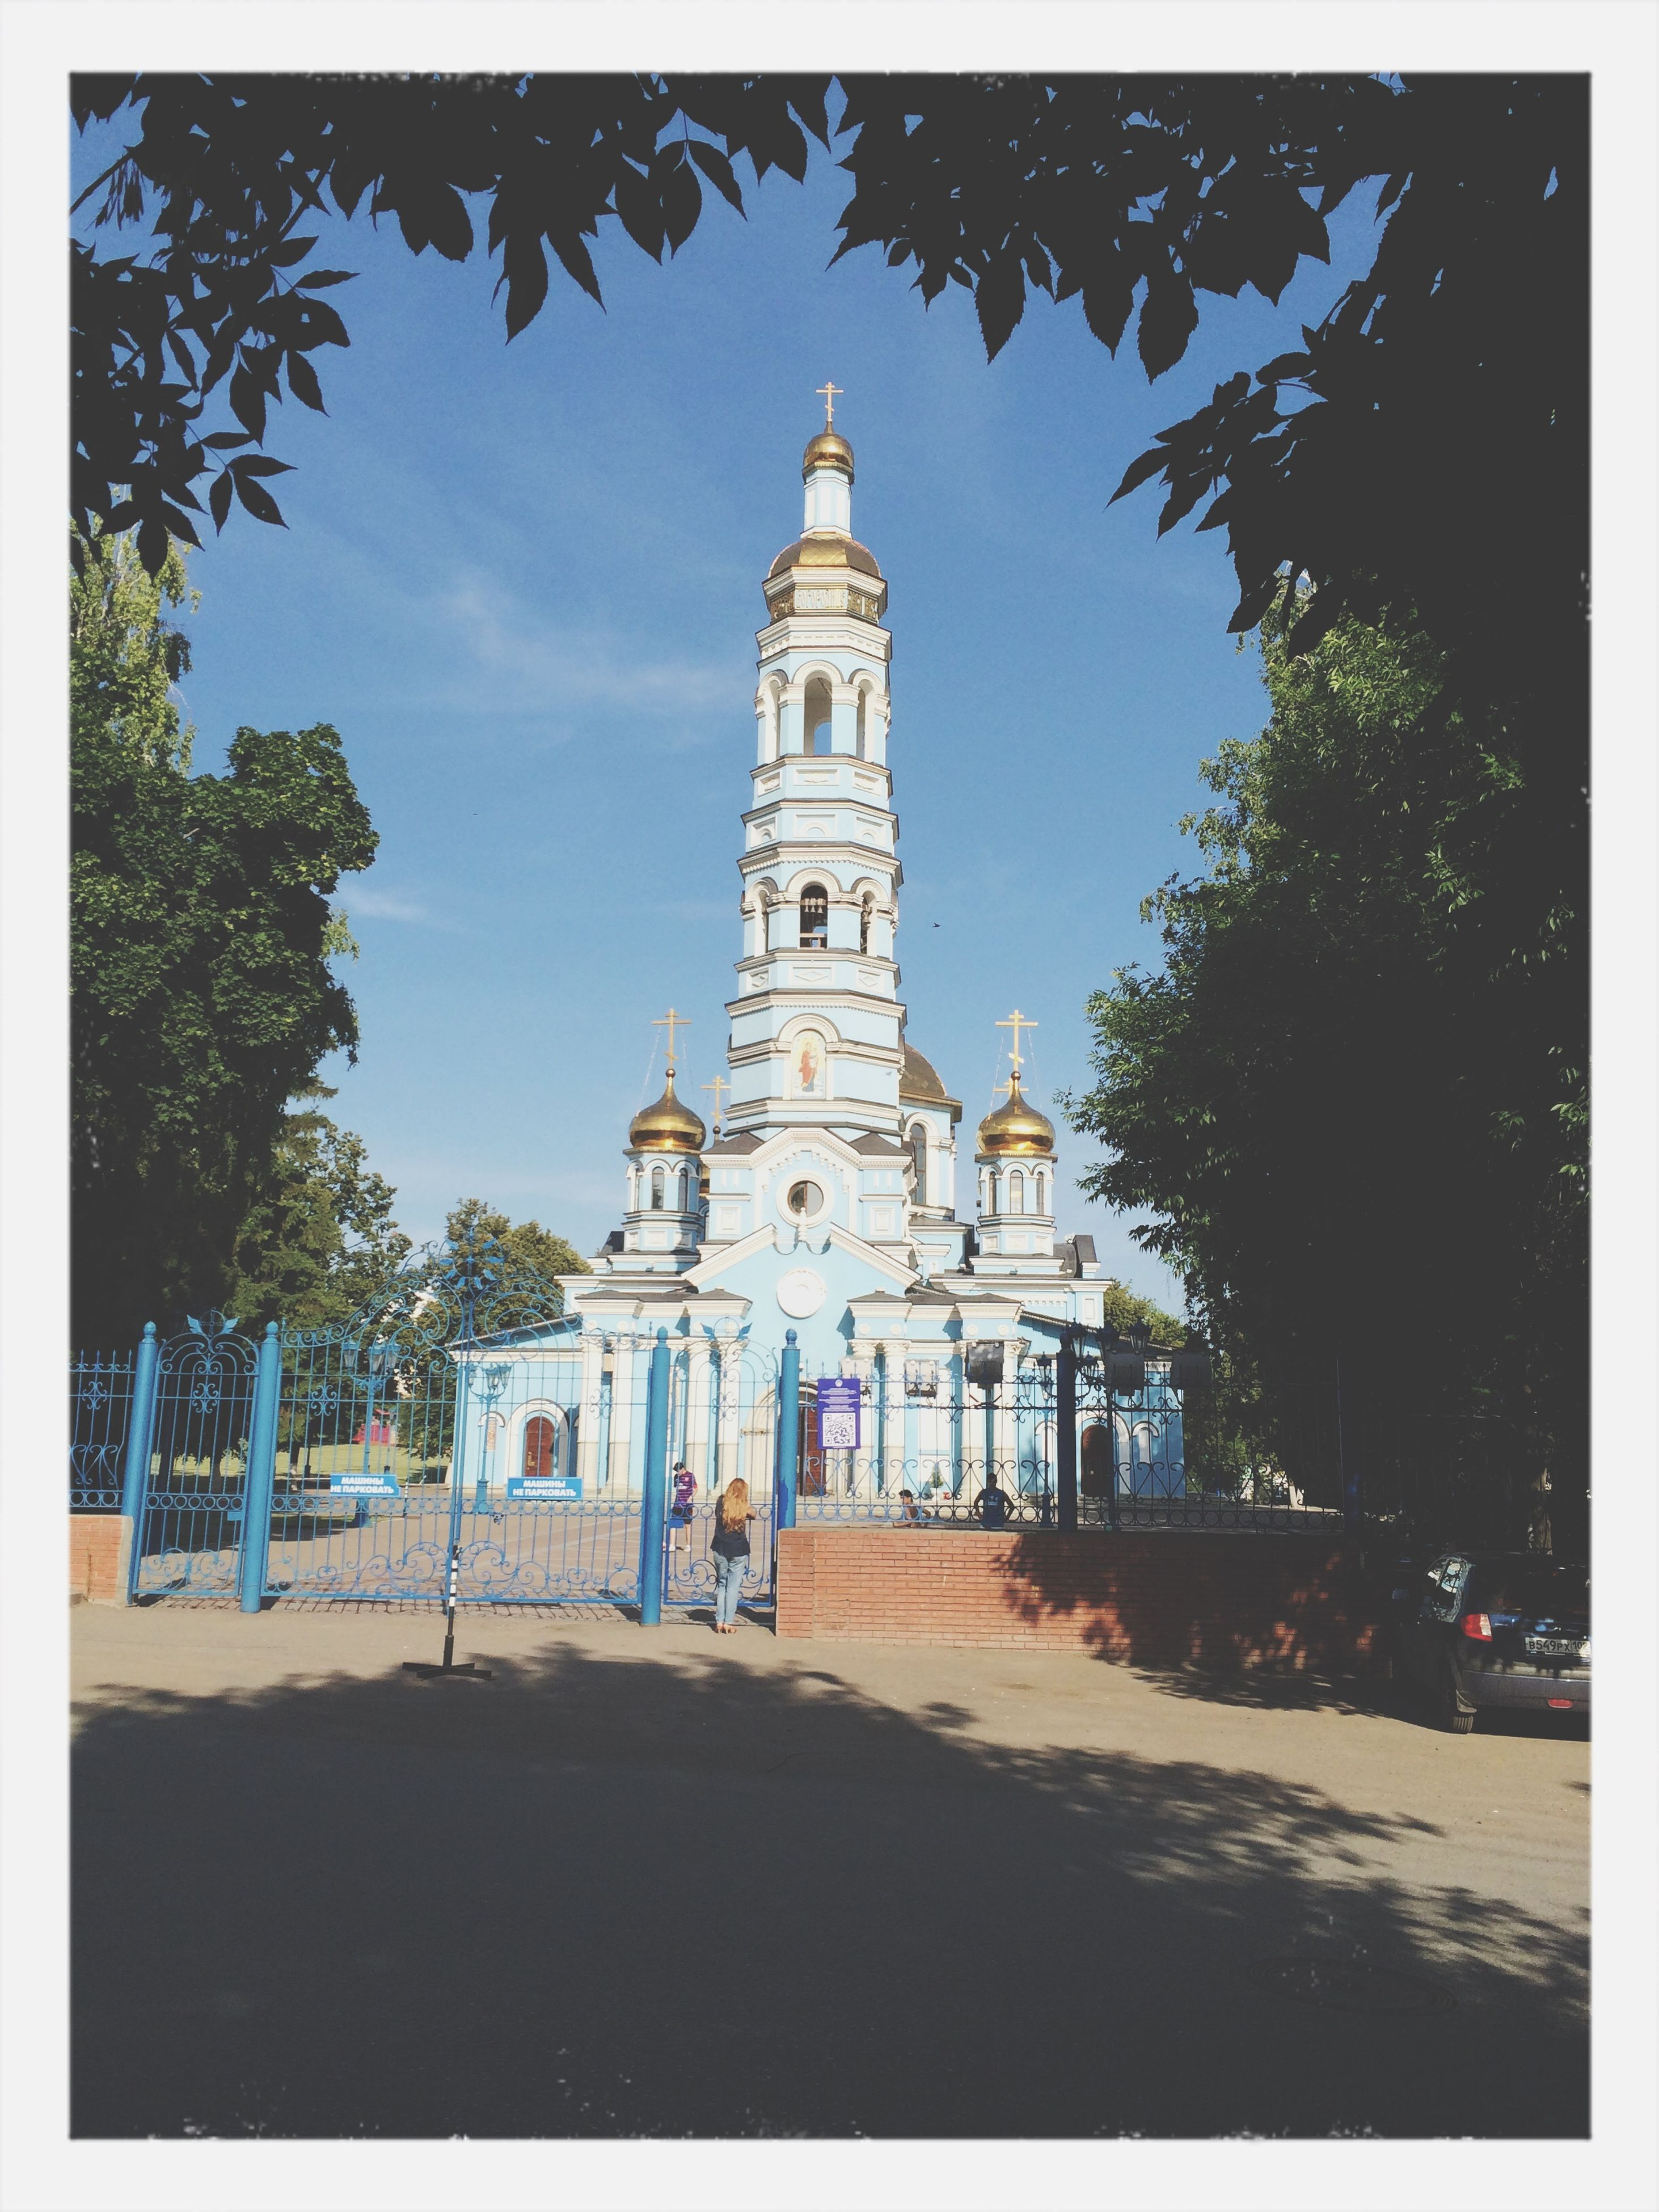 architecture, building exterior, built structure, transfer print, tree, auto post production filter, sky, place of worship, church, religion, incidental people, day, spirituality, history, outdoors, facade, street, sunlight, city